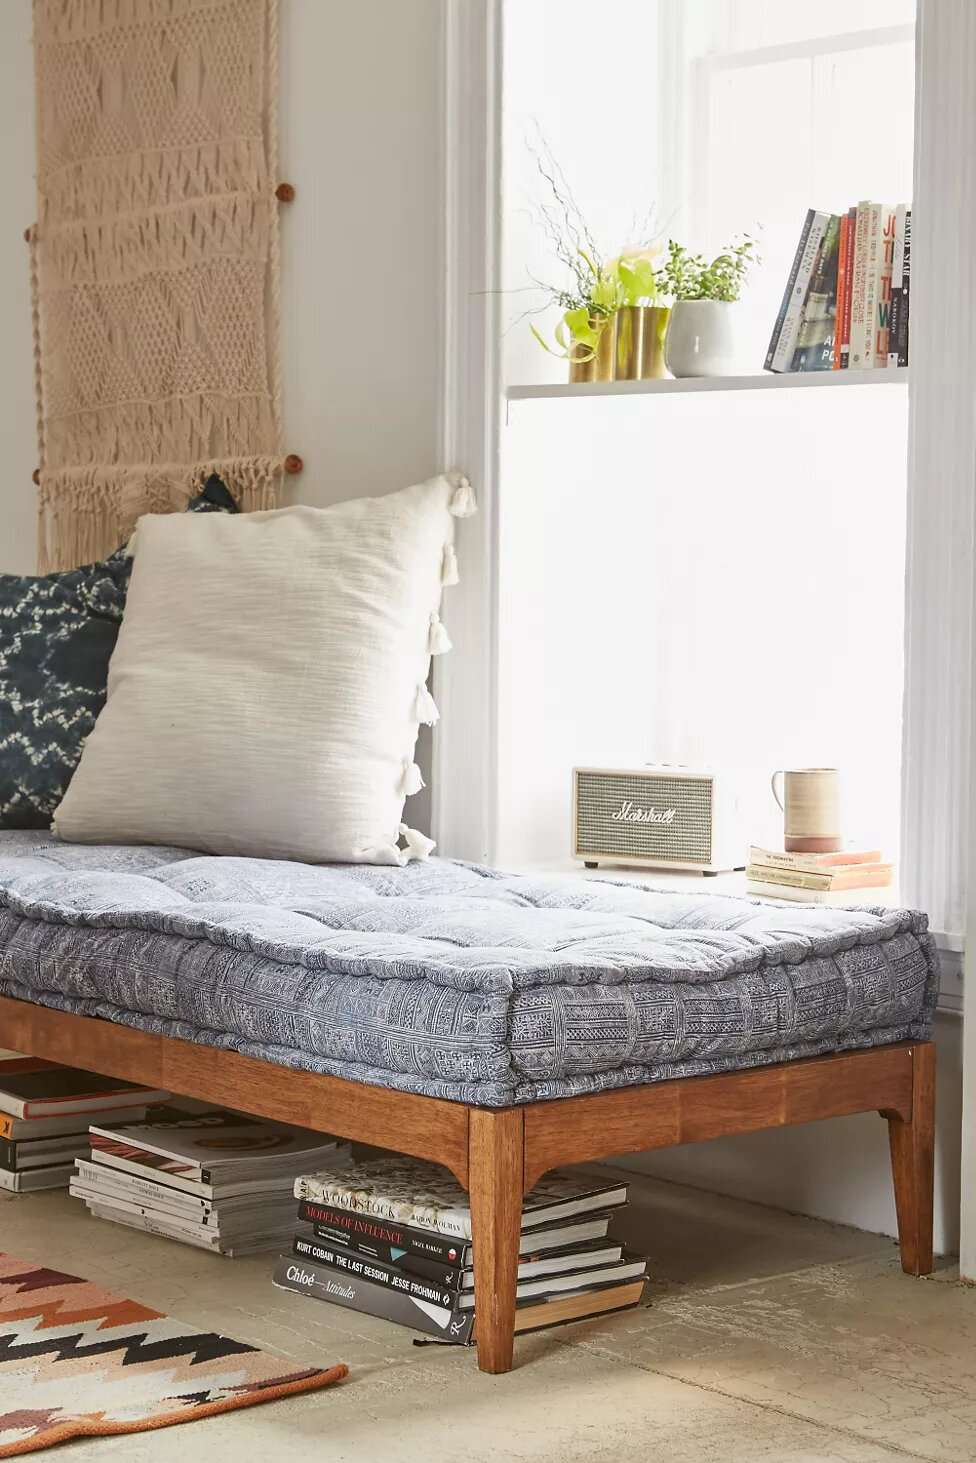 Aesthetic Bedroom Ideas With Daybed